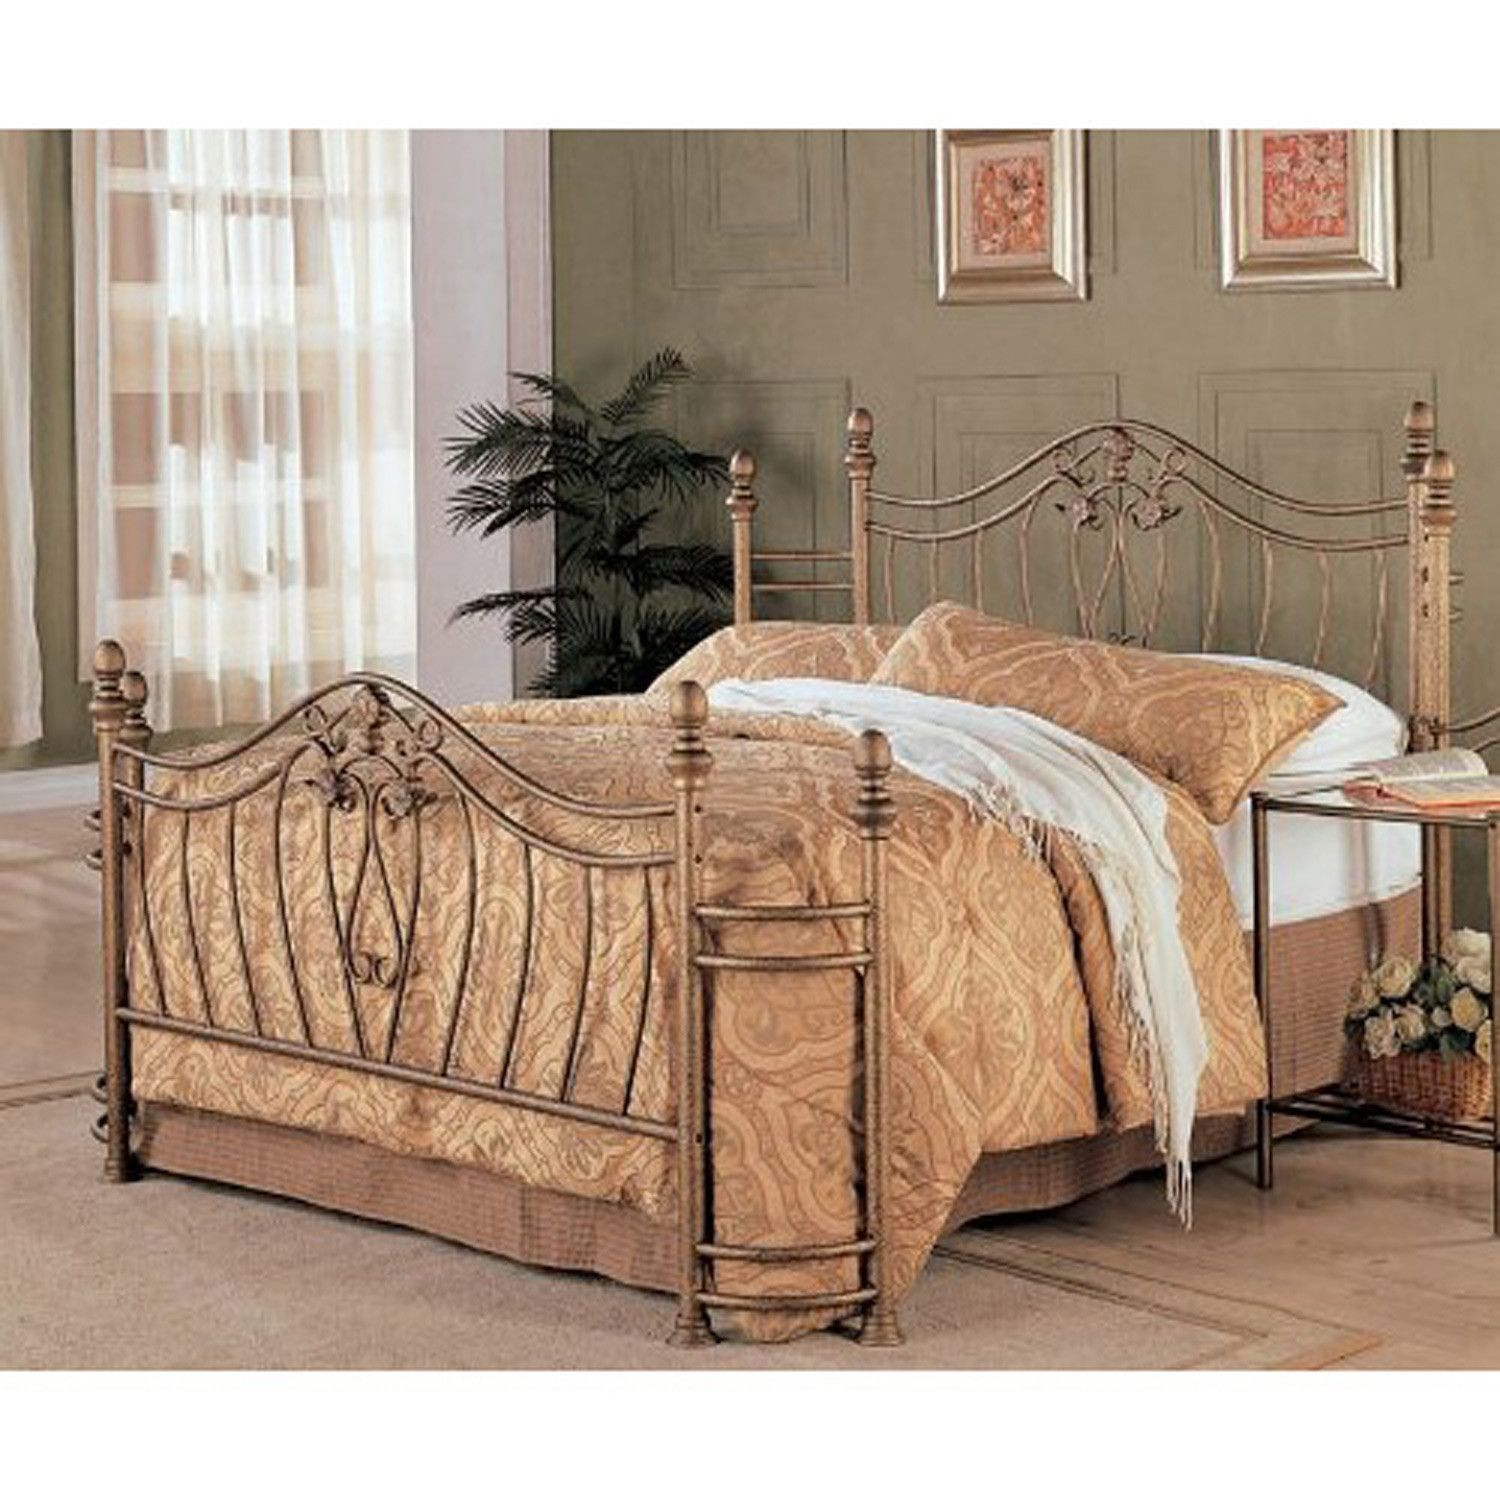 Antique iron bed queen - Queen Size Metal Bed With Headboard Footboard In Antique Brushed Gold Finish